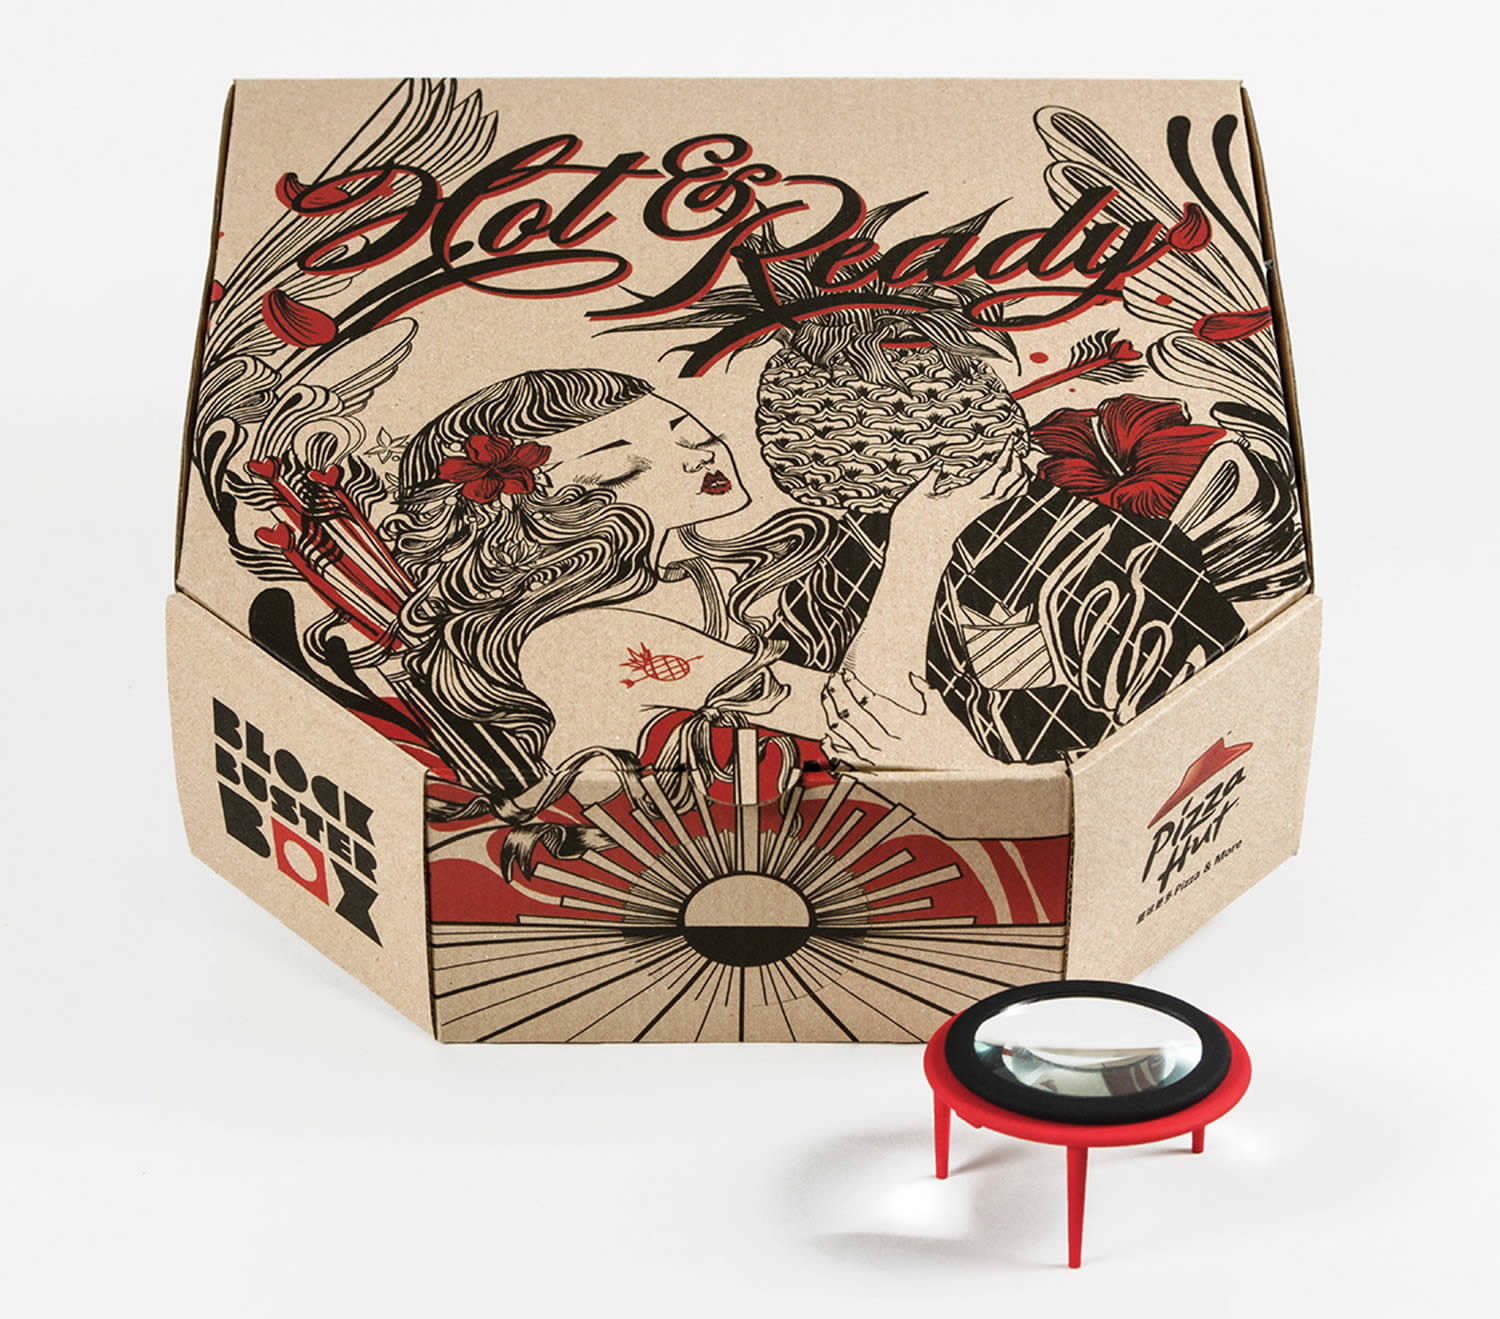 pizza-hut-projector-box-02